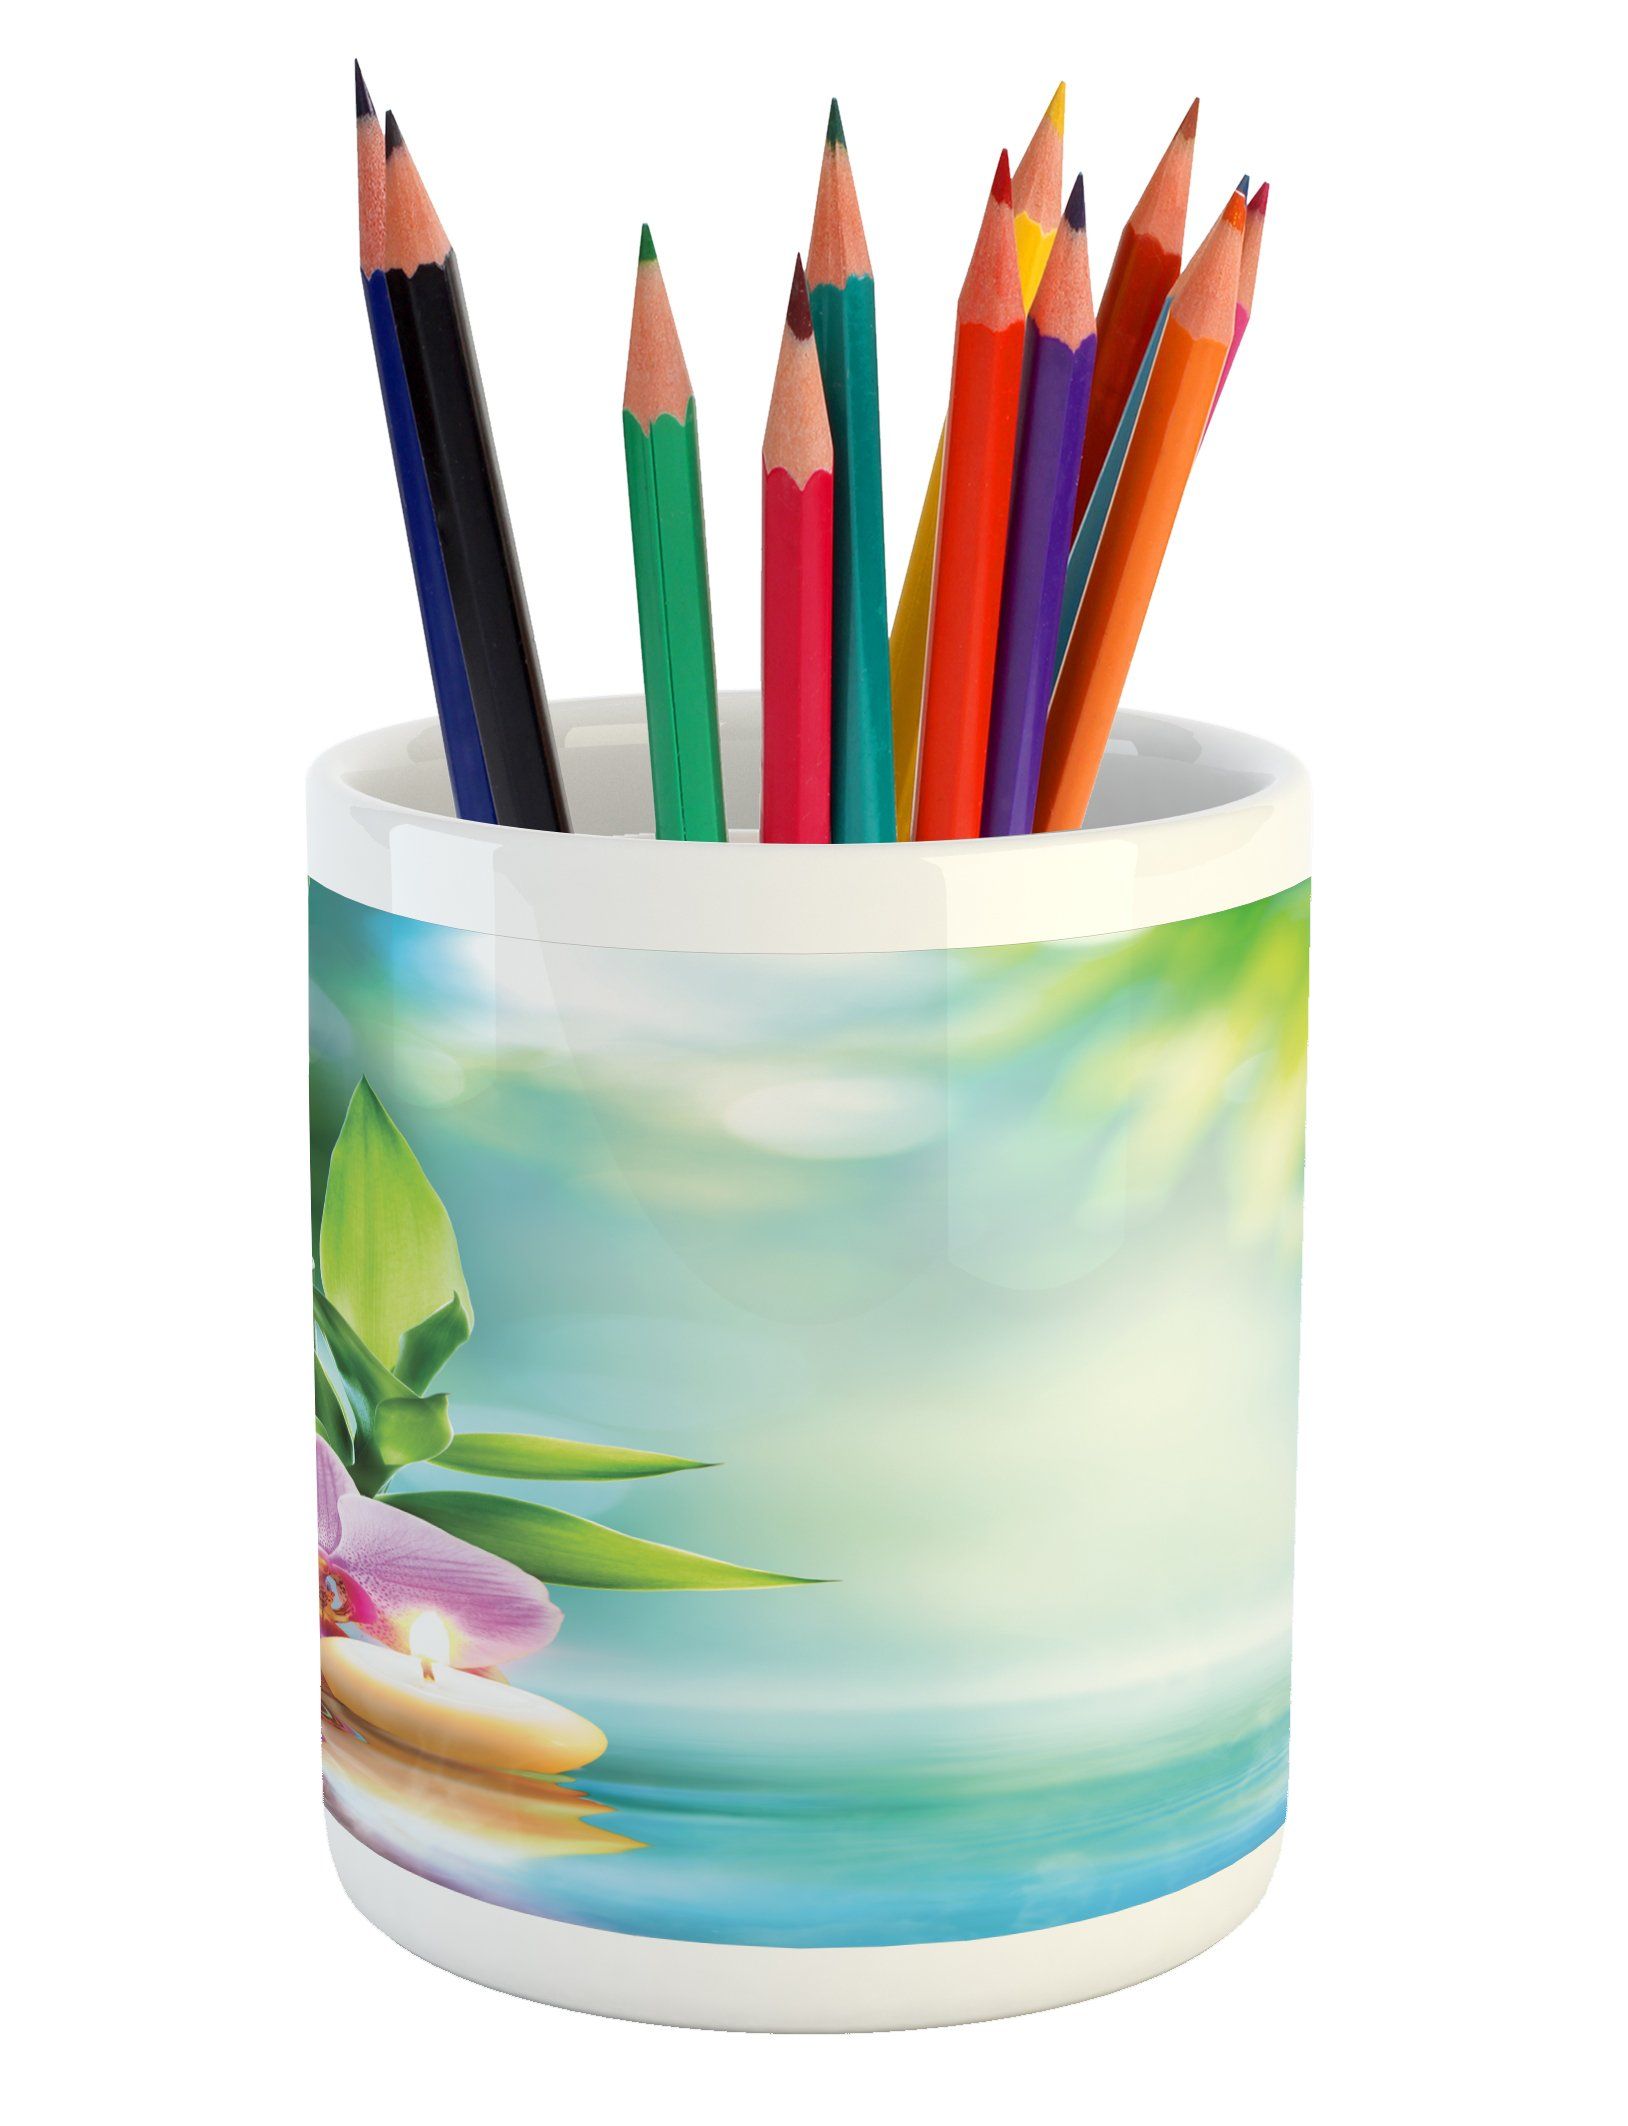 Ambesonne Spa Pencil Pen Holder, Symbolic Spa Features with Candle and Bamboos Tranquil and Thoughtful Life Nature Print, Printed Ceramic Pencil Pen Holder for Desk Office Accessory, Multicolor